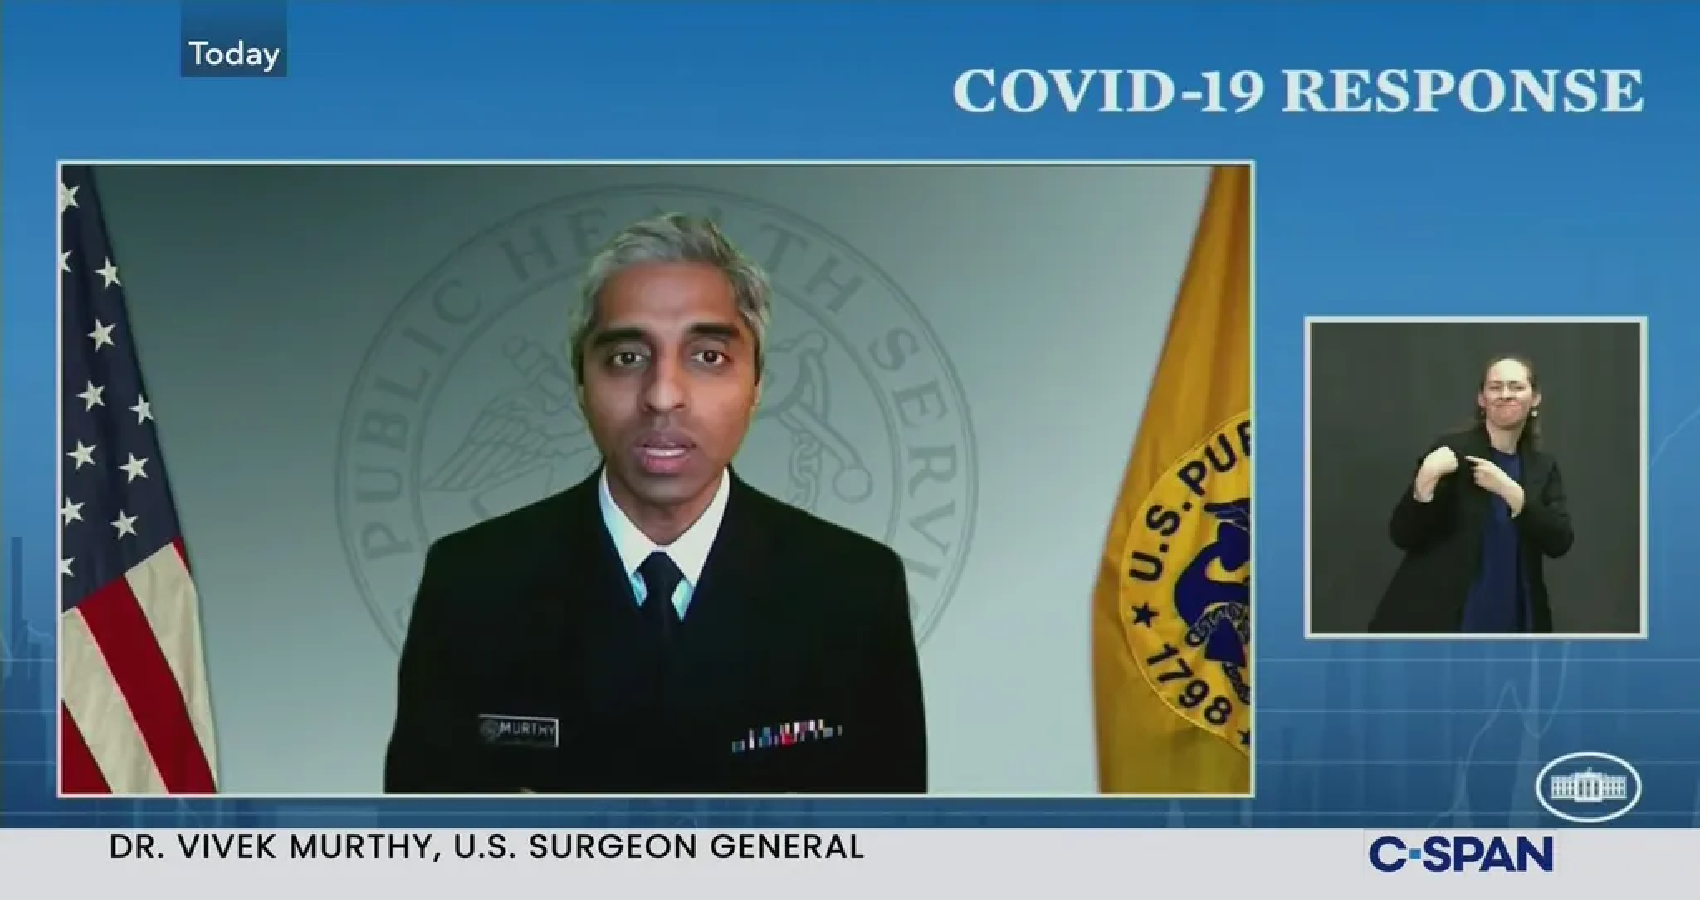 U.S. Surgeon General Vivek Murthy Says, Additional Funds To Places Hit disproportionately by COVID-19